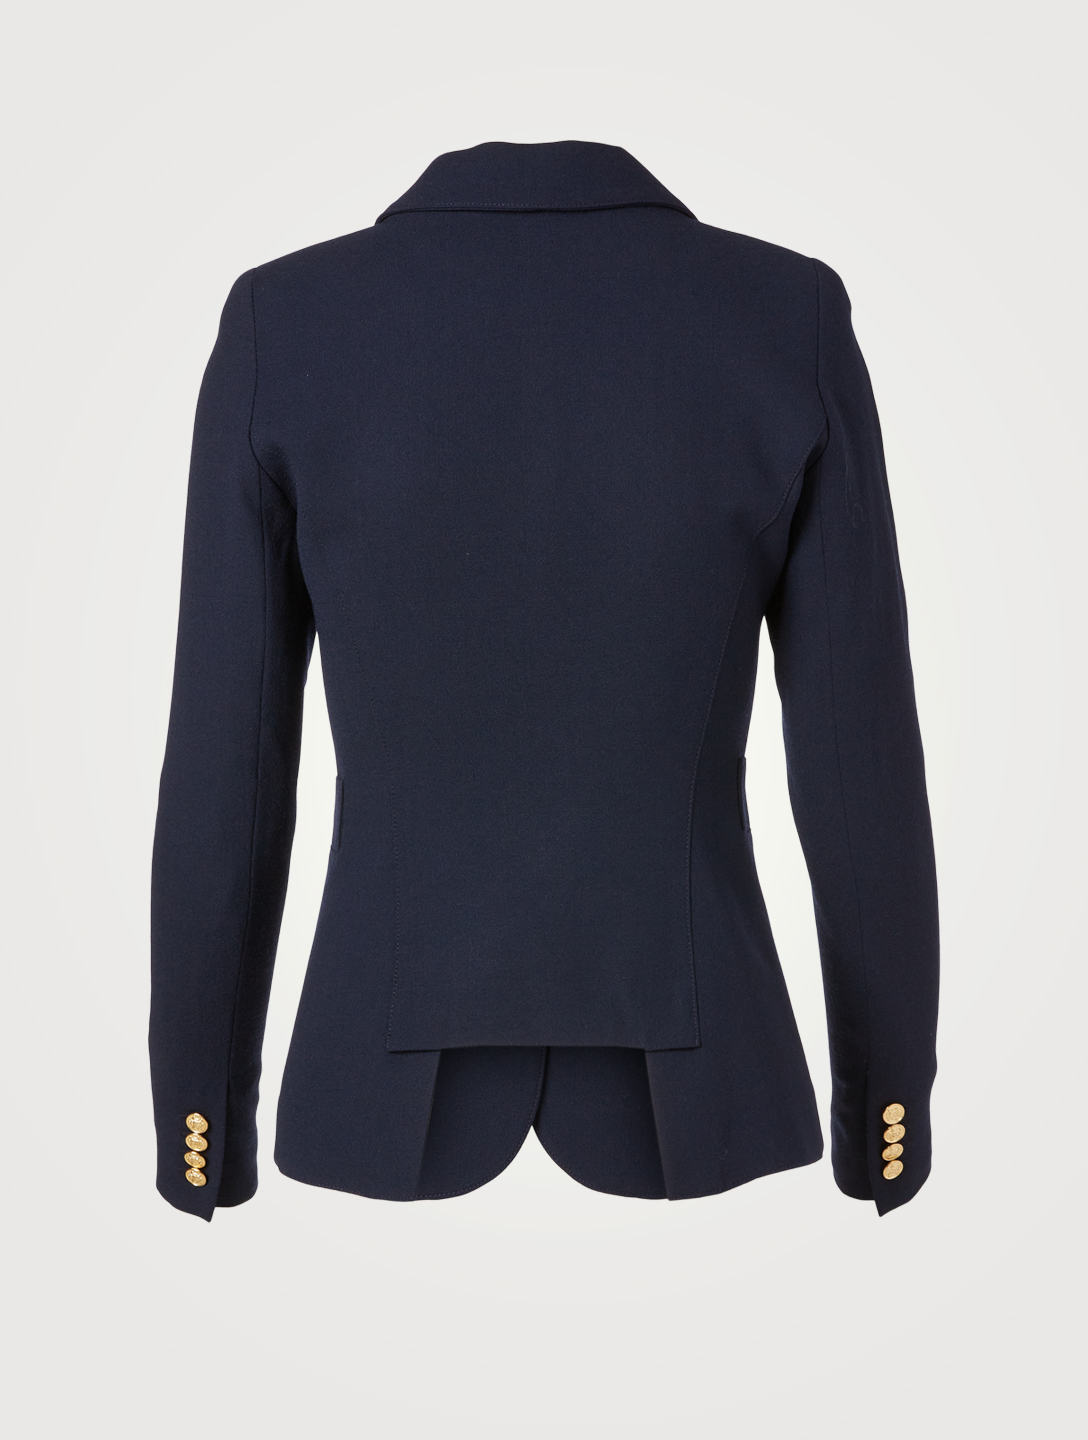 SMYTHE Duchess Wool Blazer Women's Blue